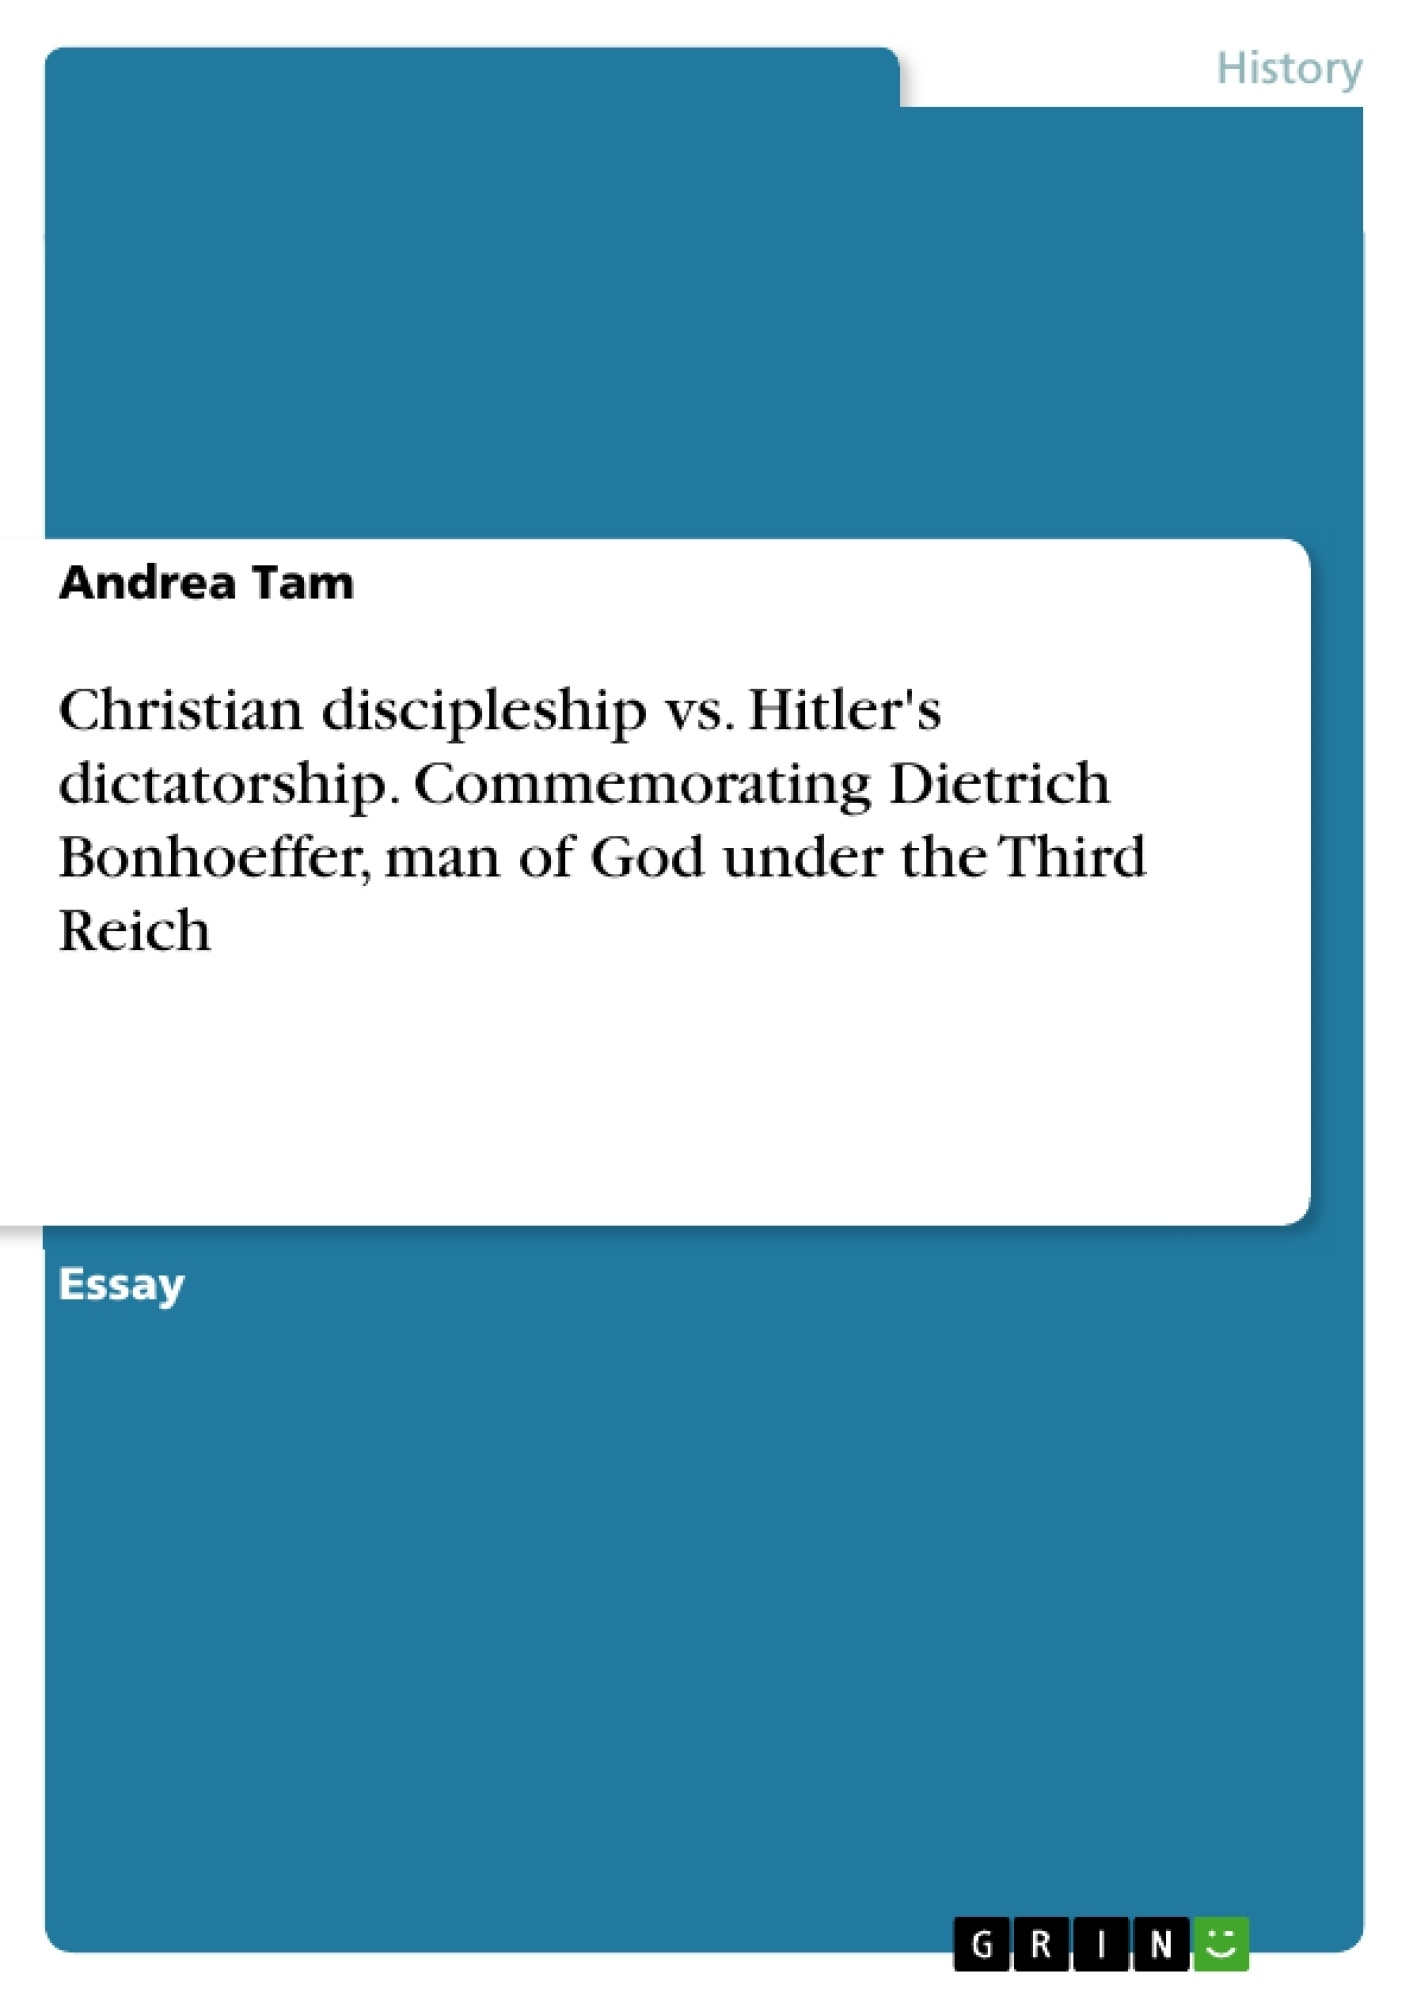 Title: Christian discipleship vs. Hitler's dictatorship. Commemorating Dietrich Bonhoeffer, man of God under the Third Reich